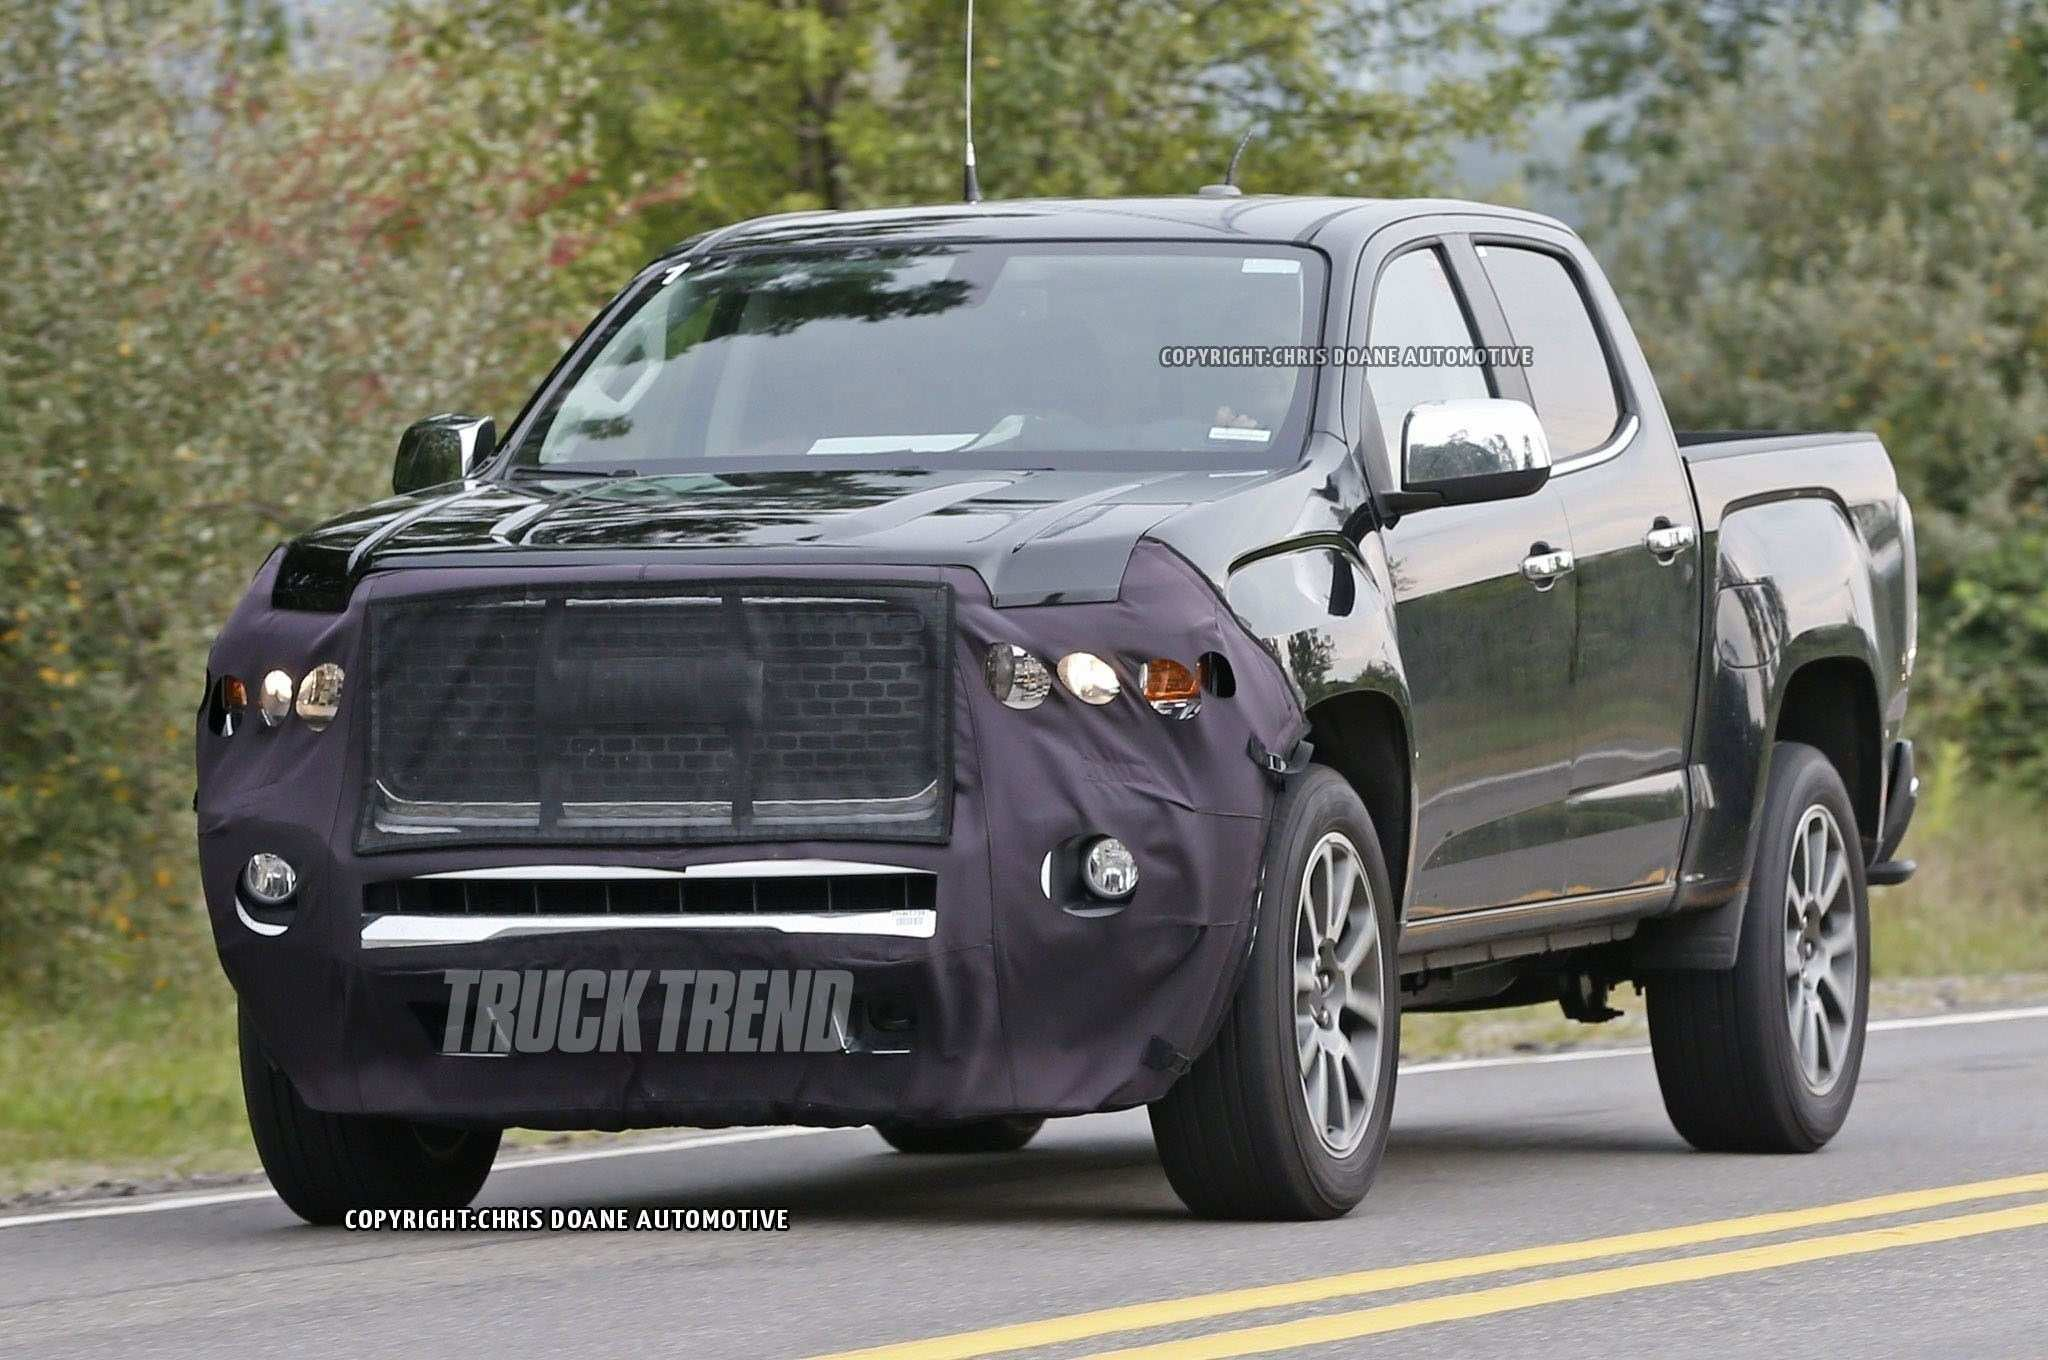 62 All New 2019 Gmc Canyon Rumors Overview with 2019 Gmc Canyon Rumors